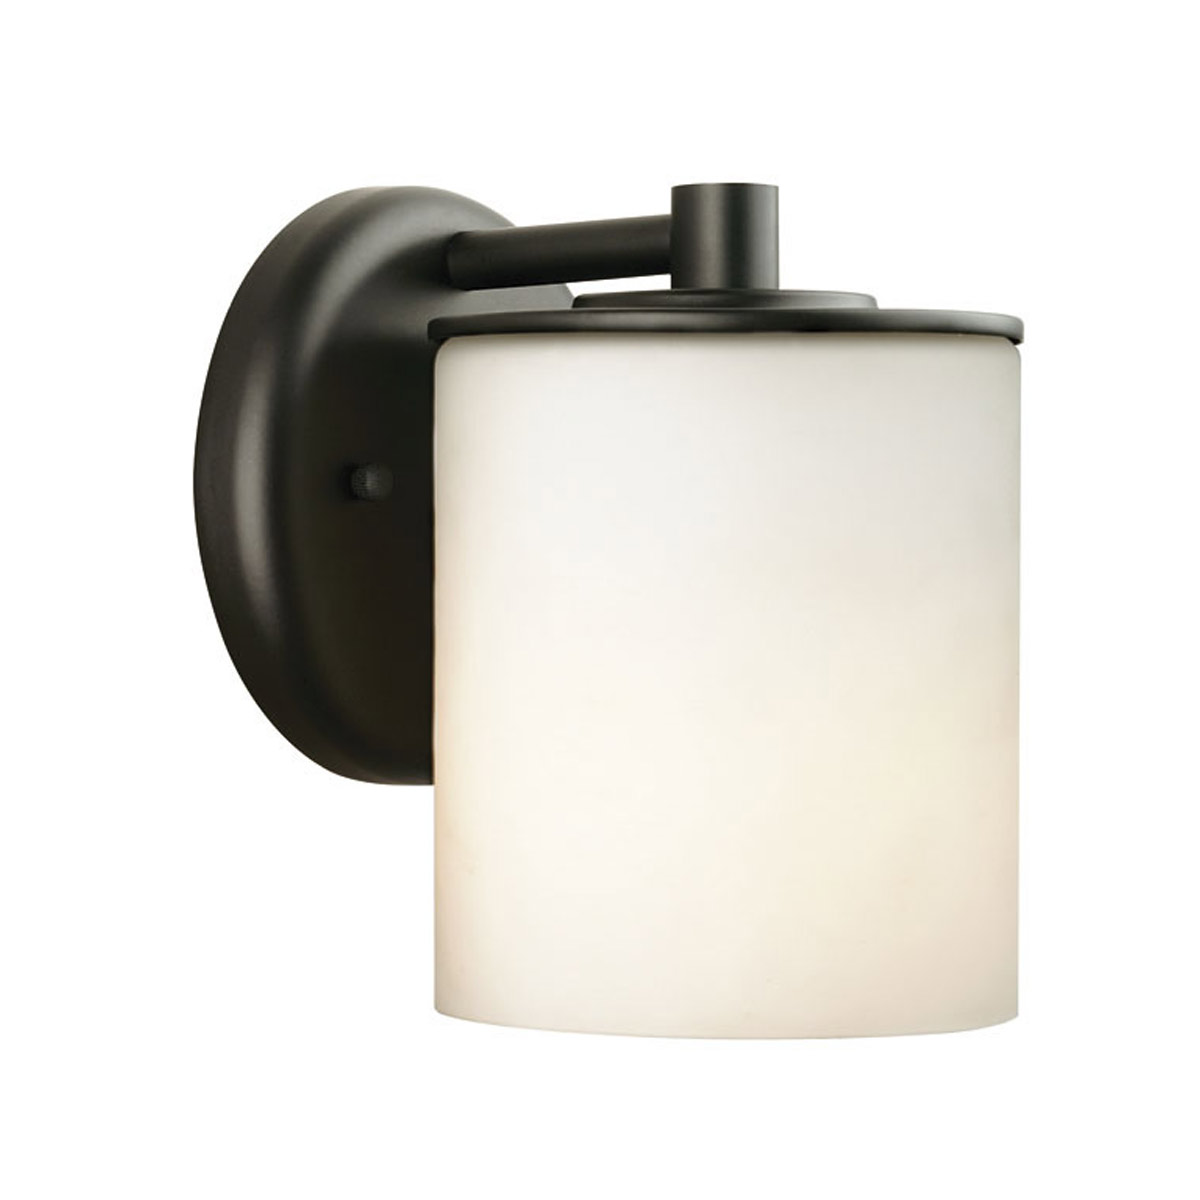 Round outdoor wall sconce by forecast f849919 midnight round outdoor wall sconce by forecast f849919 amipublicfo Gallery